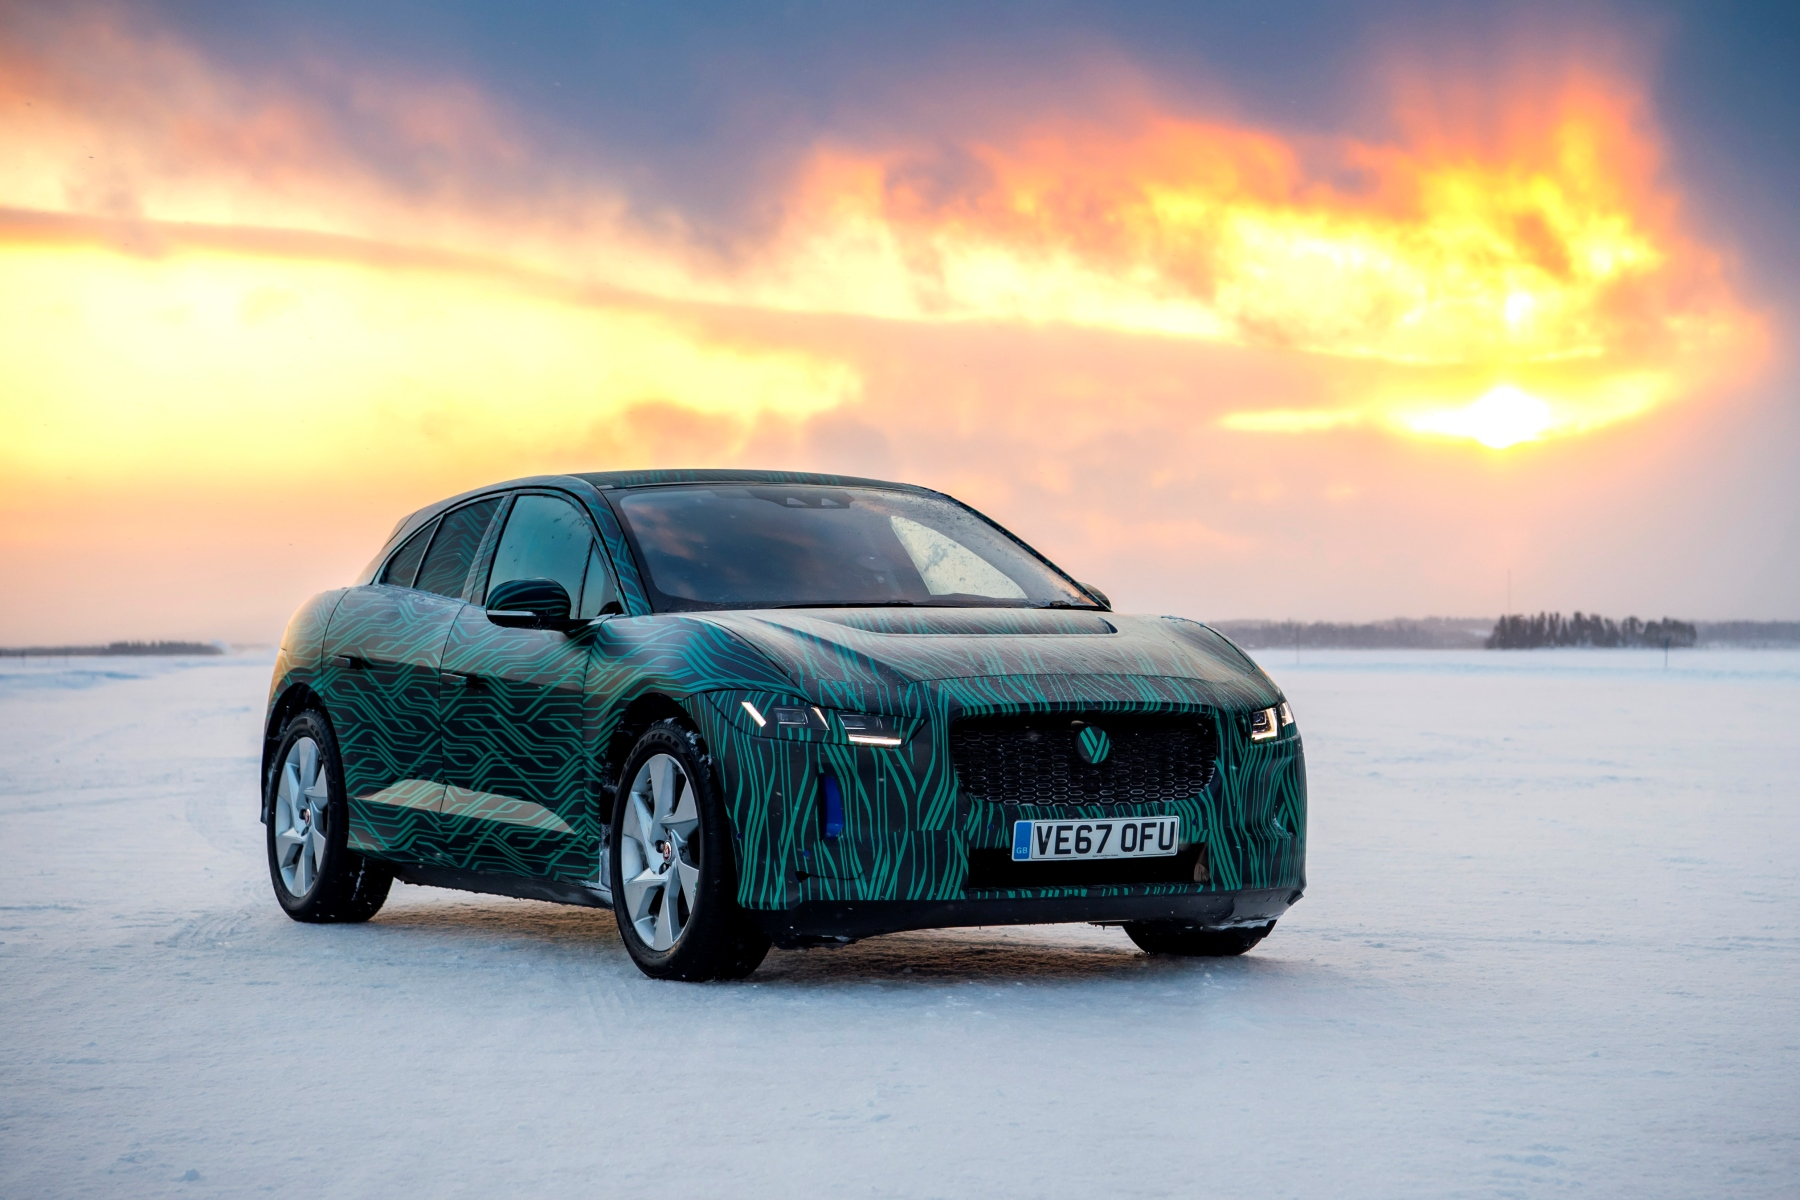 Jaguar I-Pace debut confirmed for March 1, completes winter tests